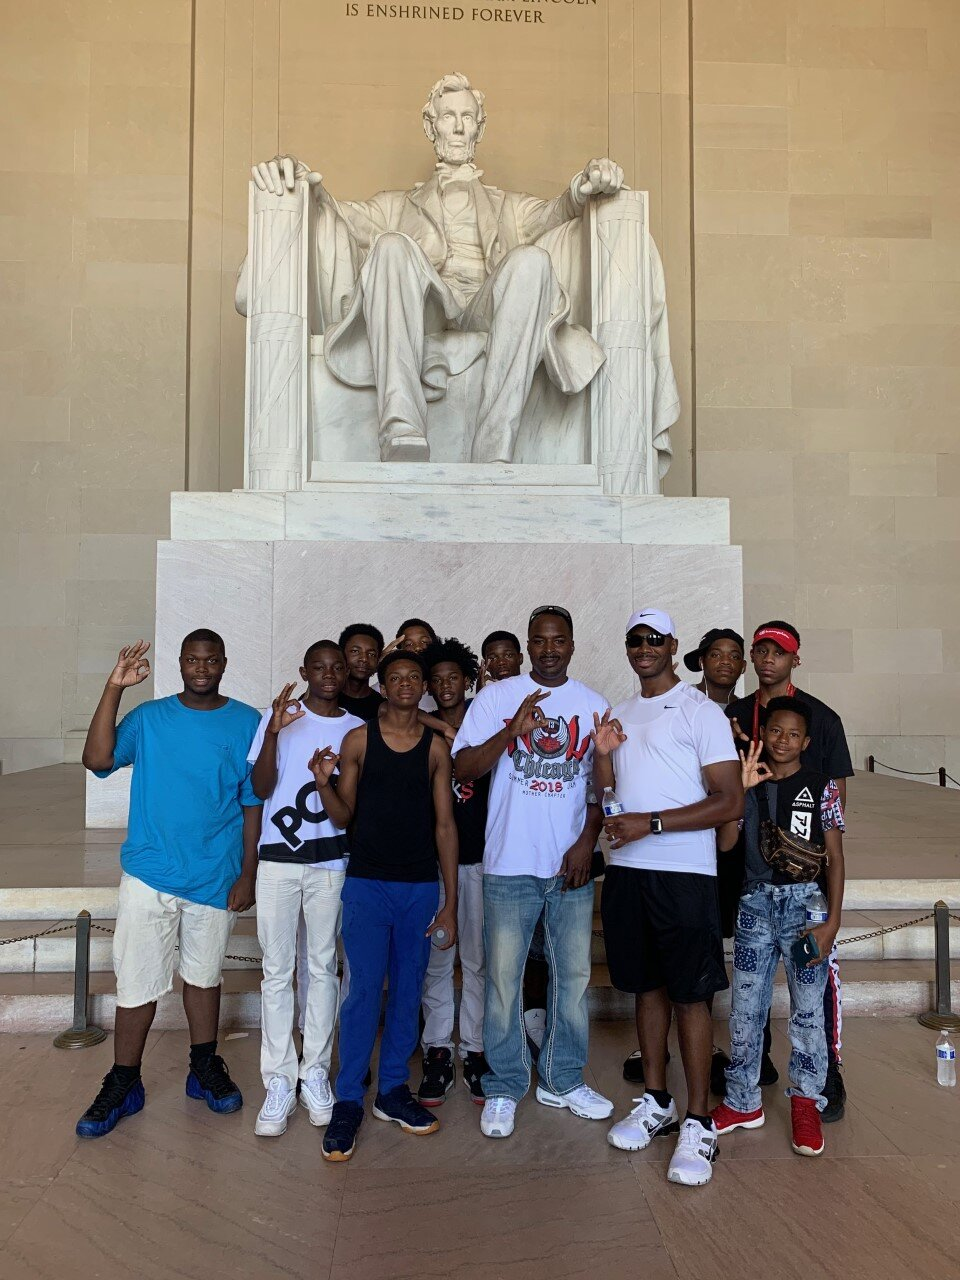 - Officers Keyes and Harris with the boys at the Lincoln monument in Washington DC